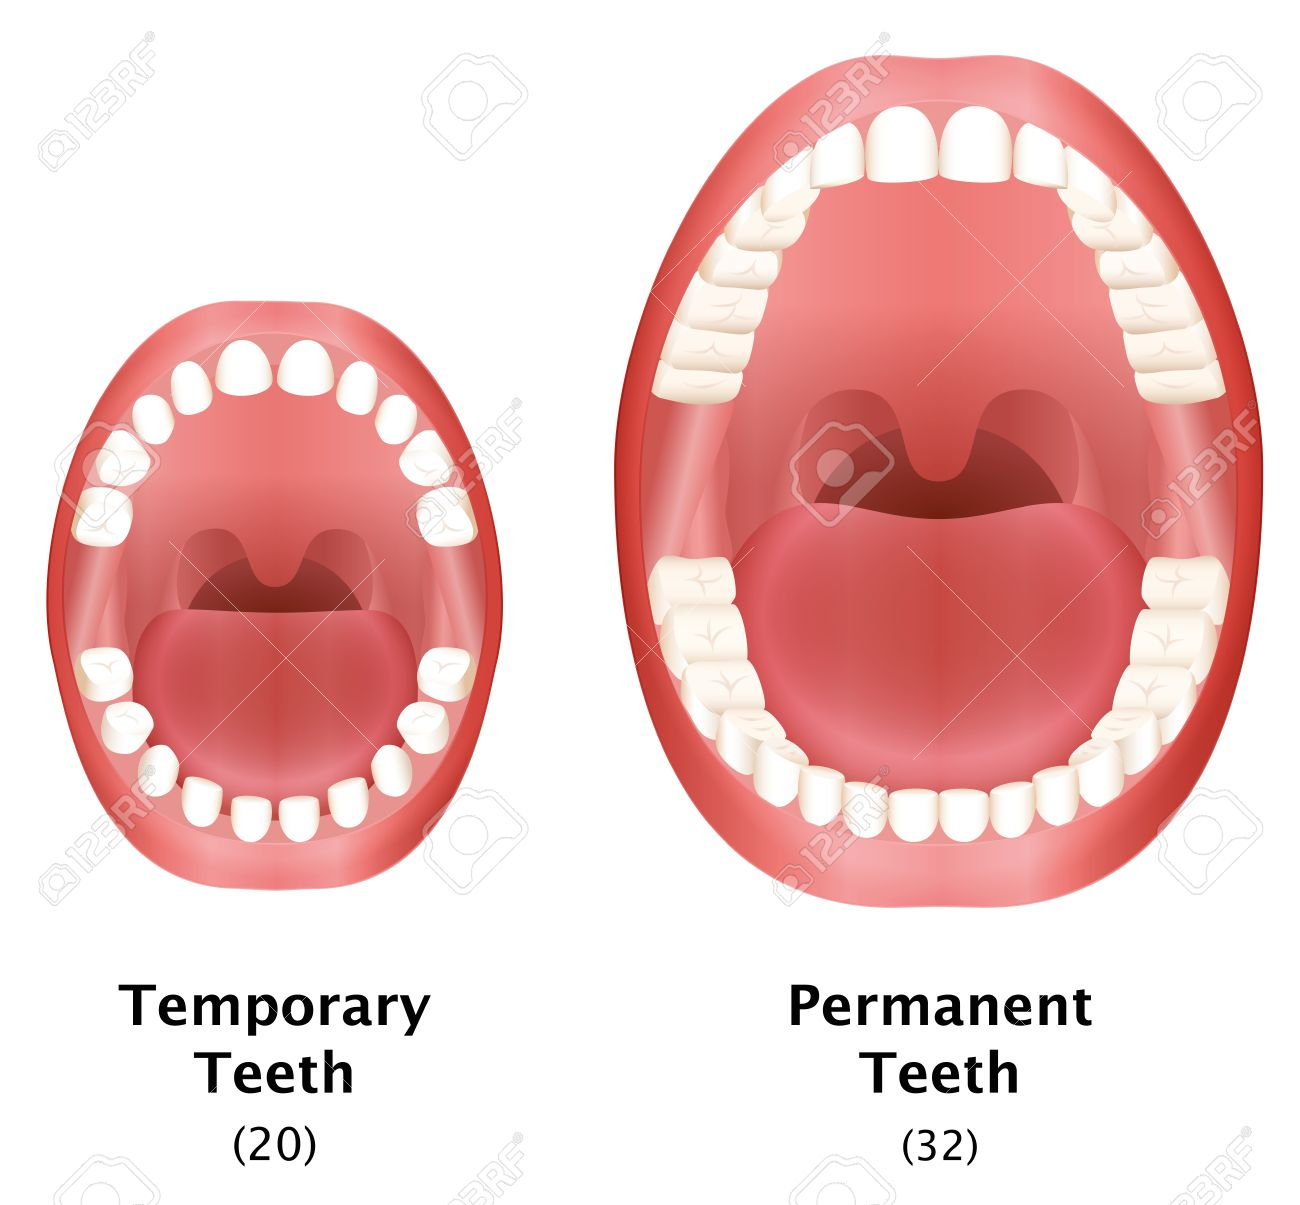 Comparison of temporary teeth of a child and permanent teeth of an adult natural dentition. Isolated vector illustration on white background. - 45716959